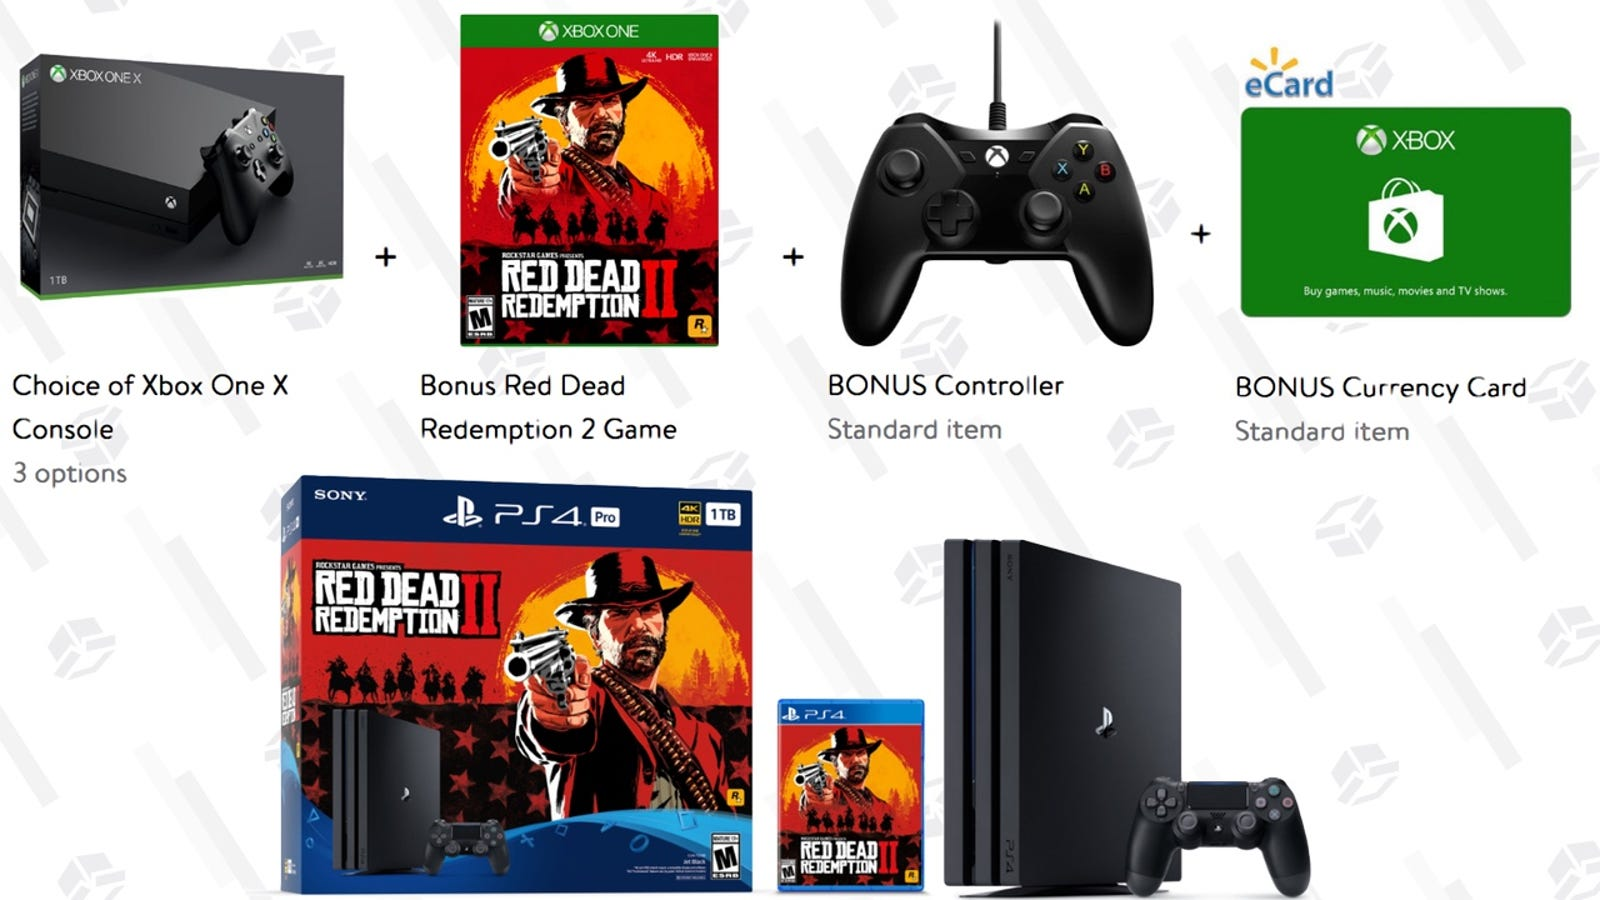 Buy a New Console, Get Red Dead Redemption 2 (and Possibly